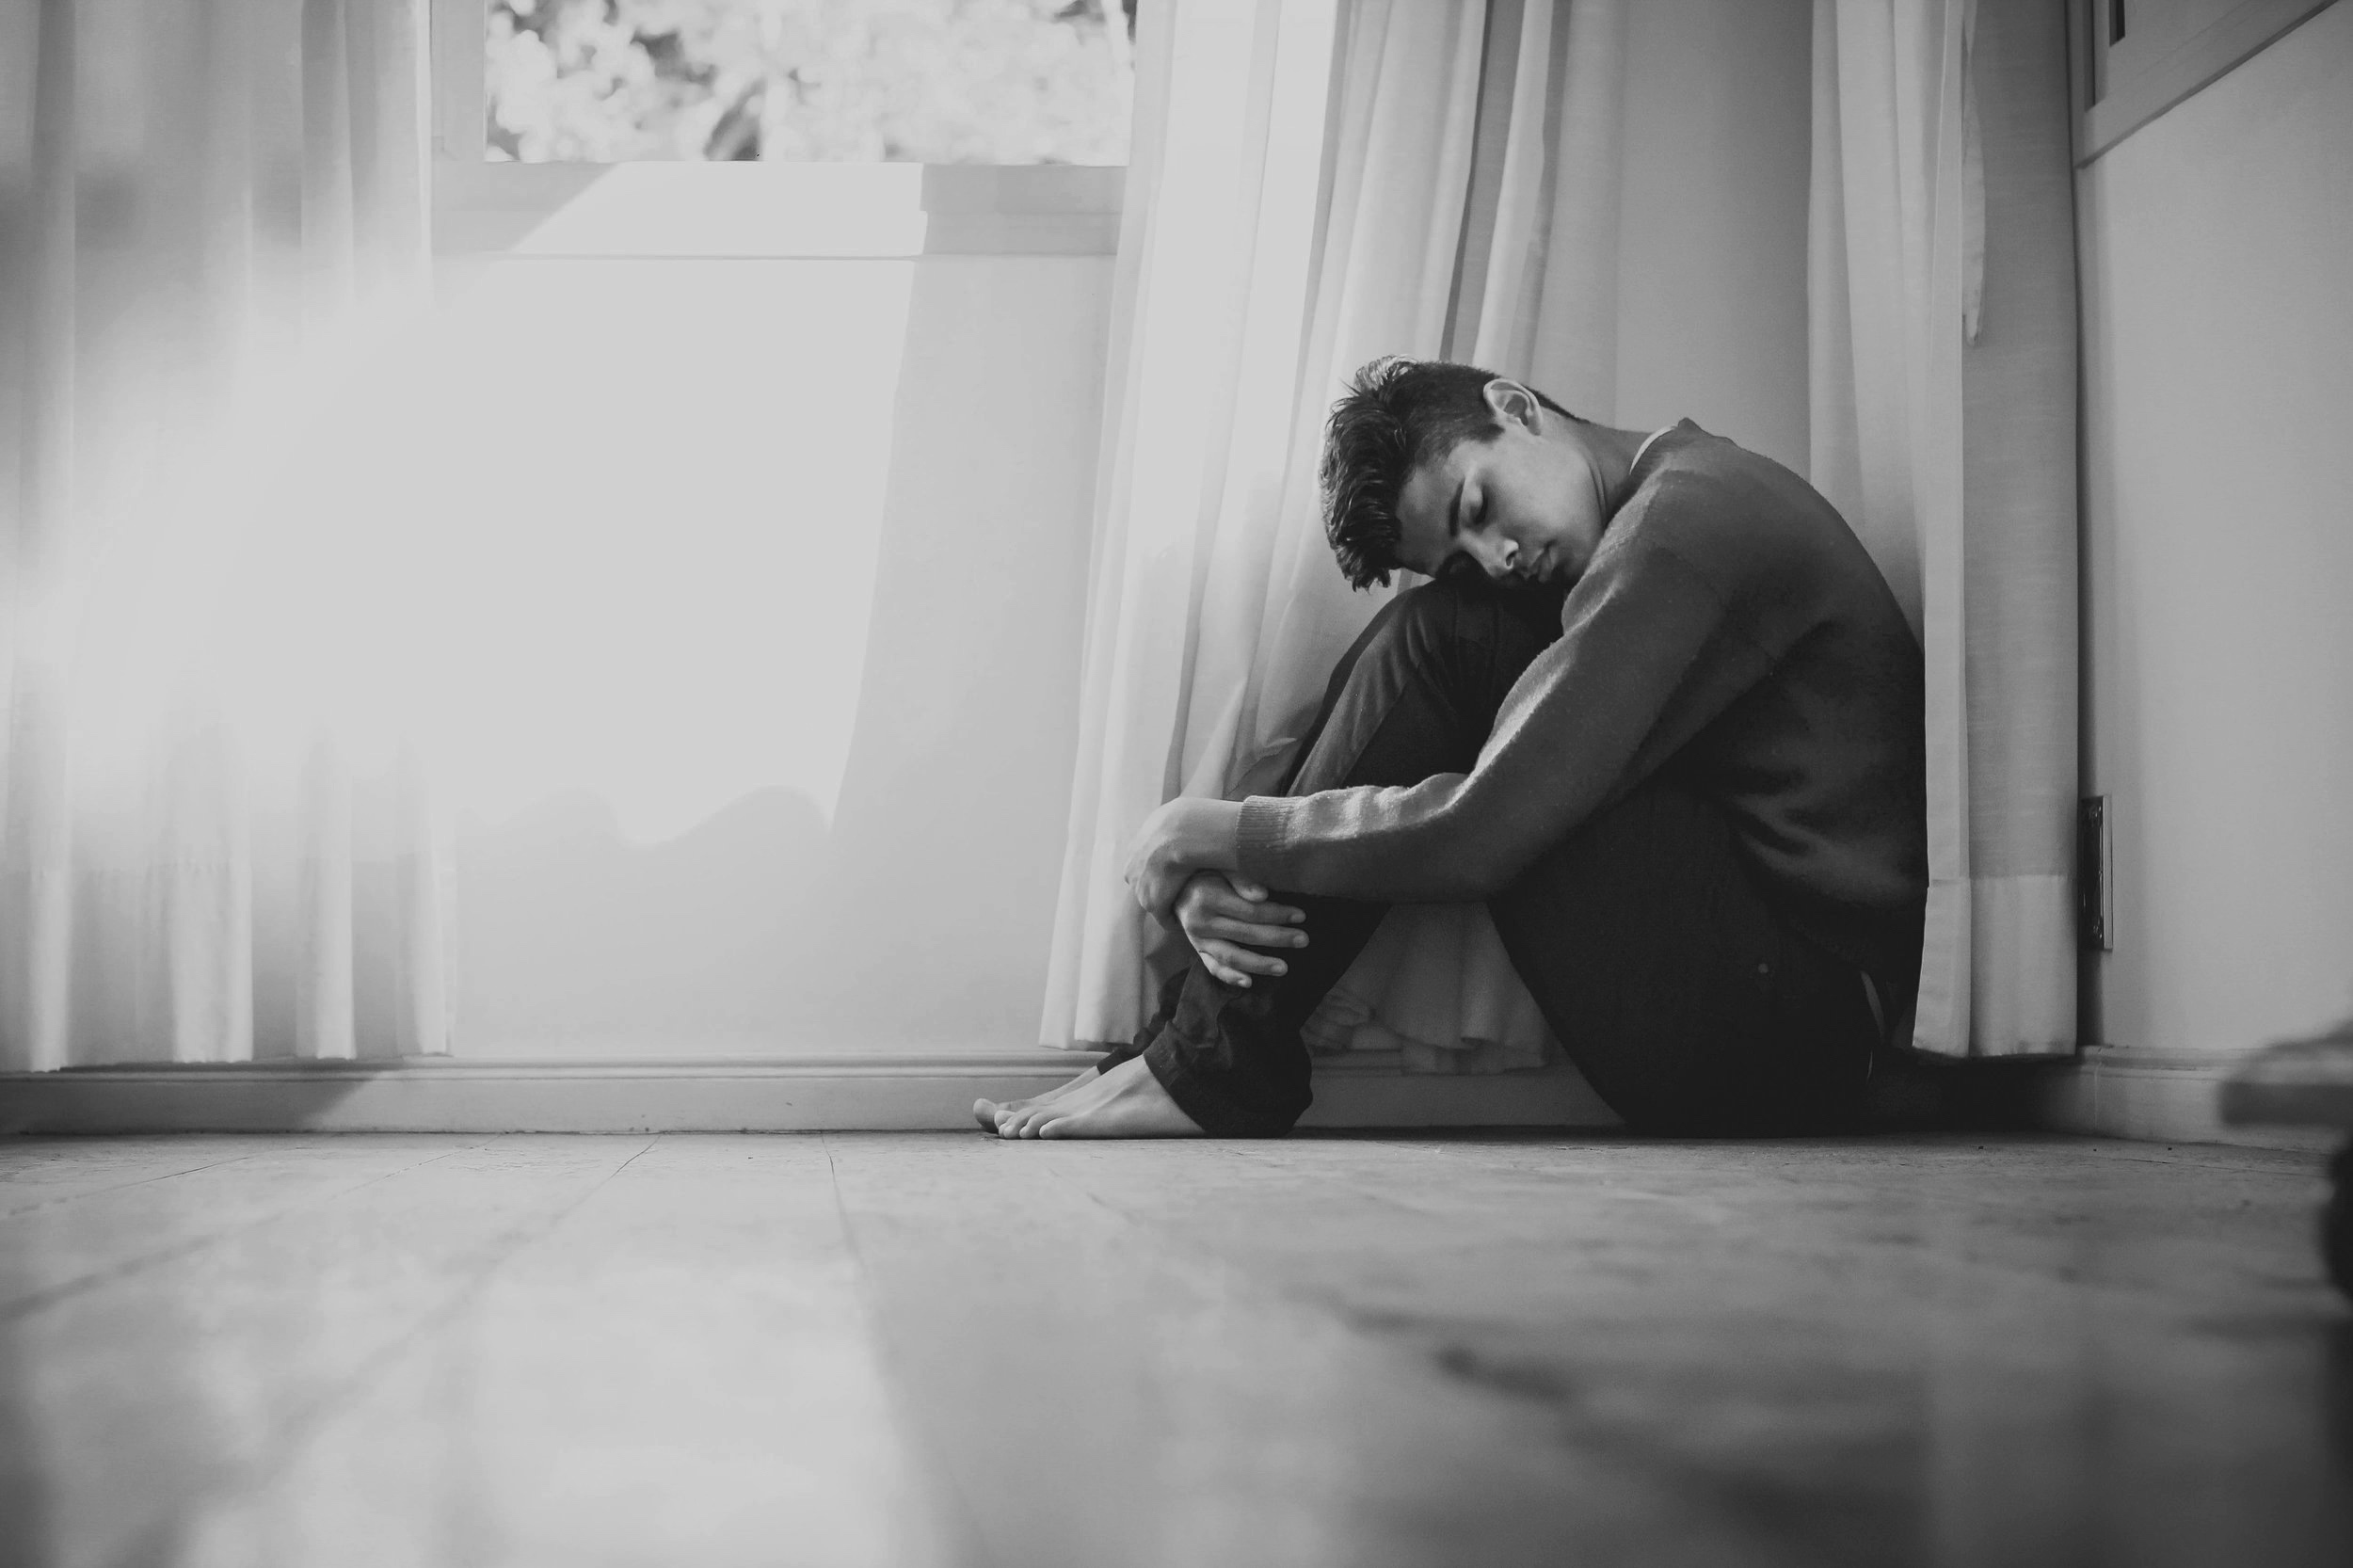 LIVING WITH ANXIETY - IS IT A TEMPORARY ISSUE? -